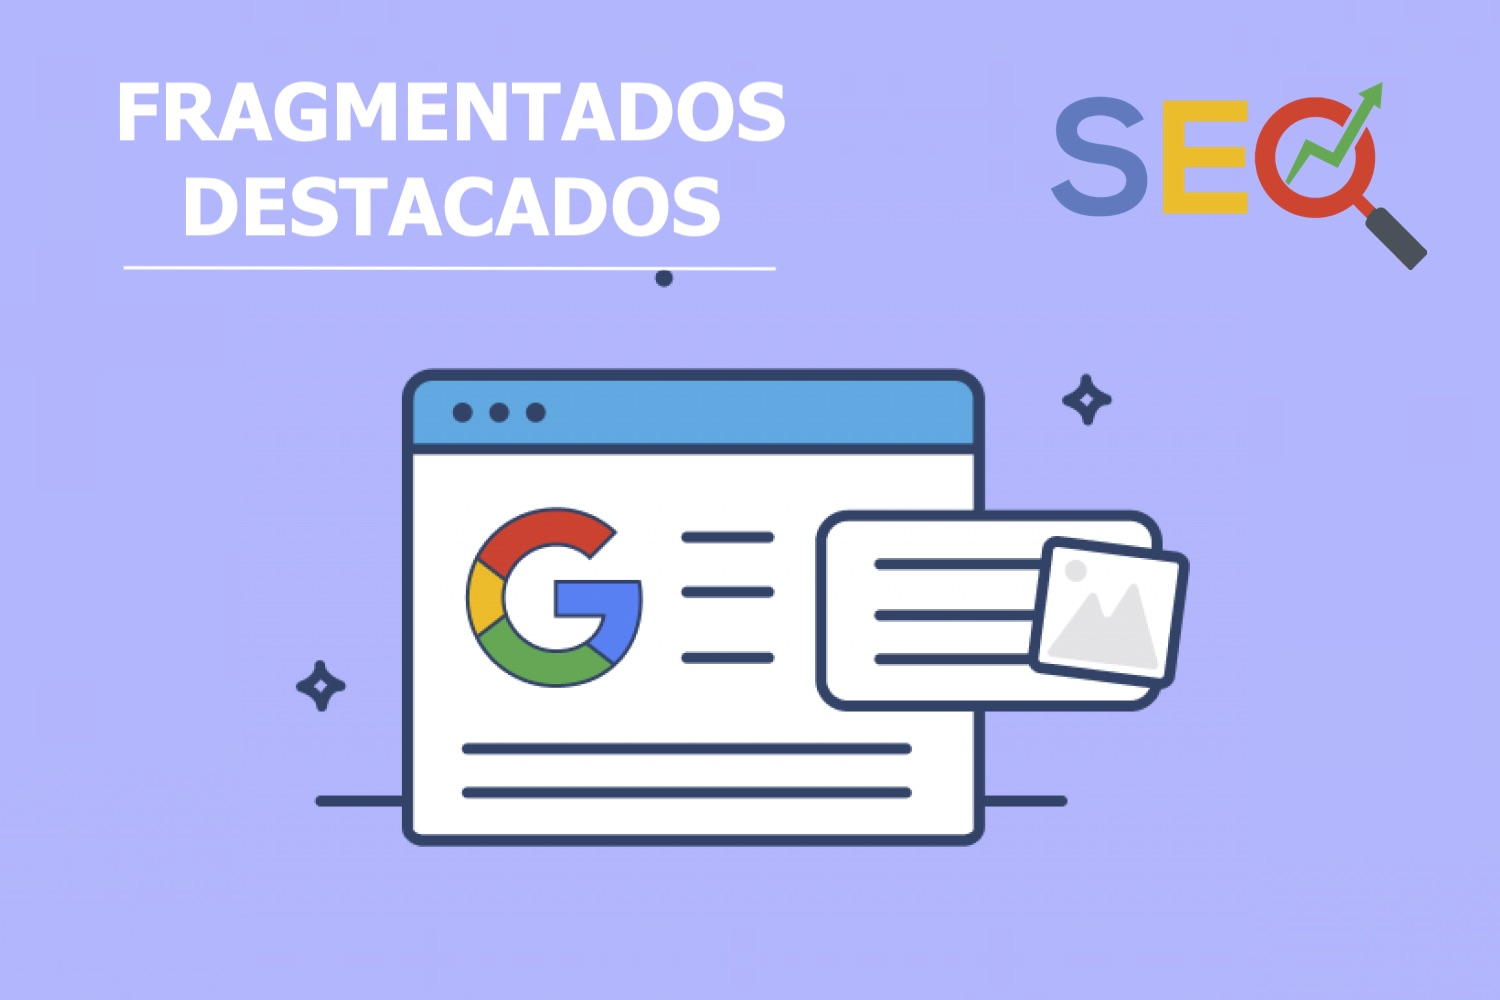 fragmentos destacados, fragmentos destacados google